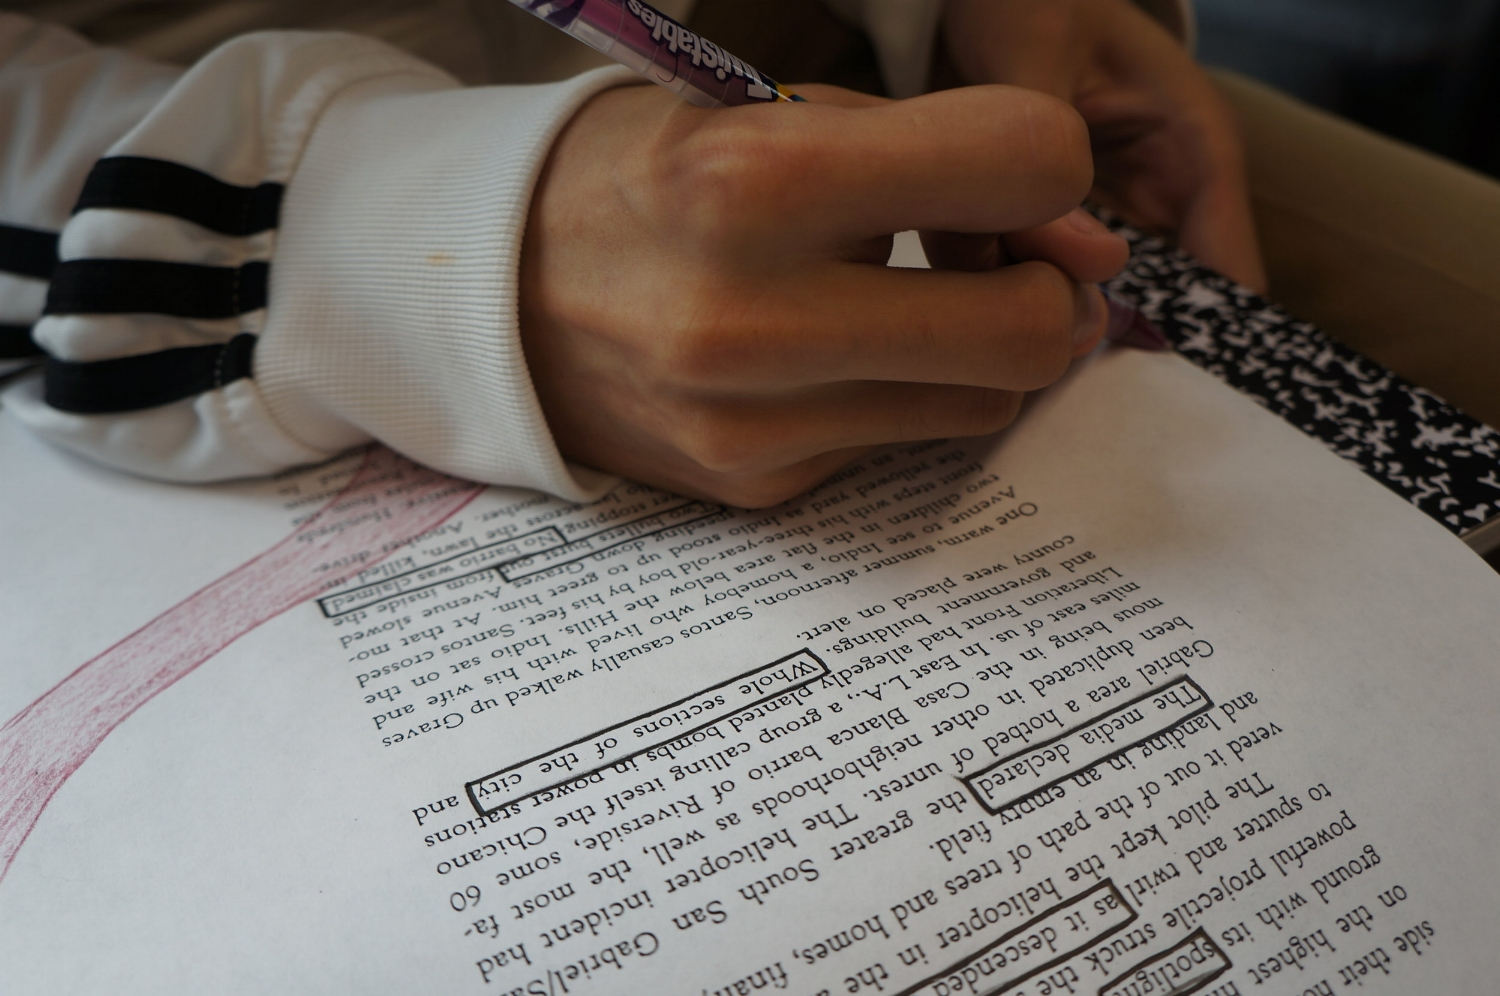 An image of one of our Adolescent Book Group students working on a blackout poetry exercise, which requires them to select certain words and phrases from a page of text to construct a poem.